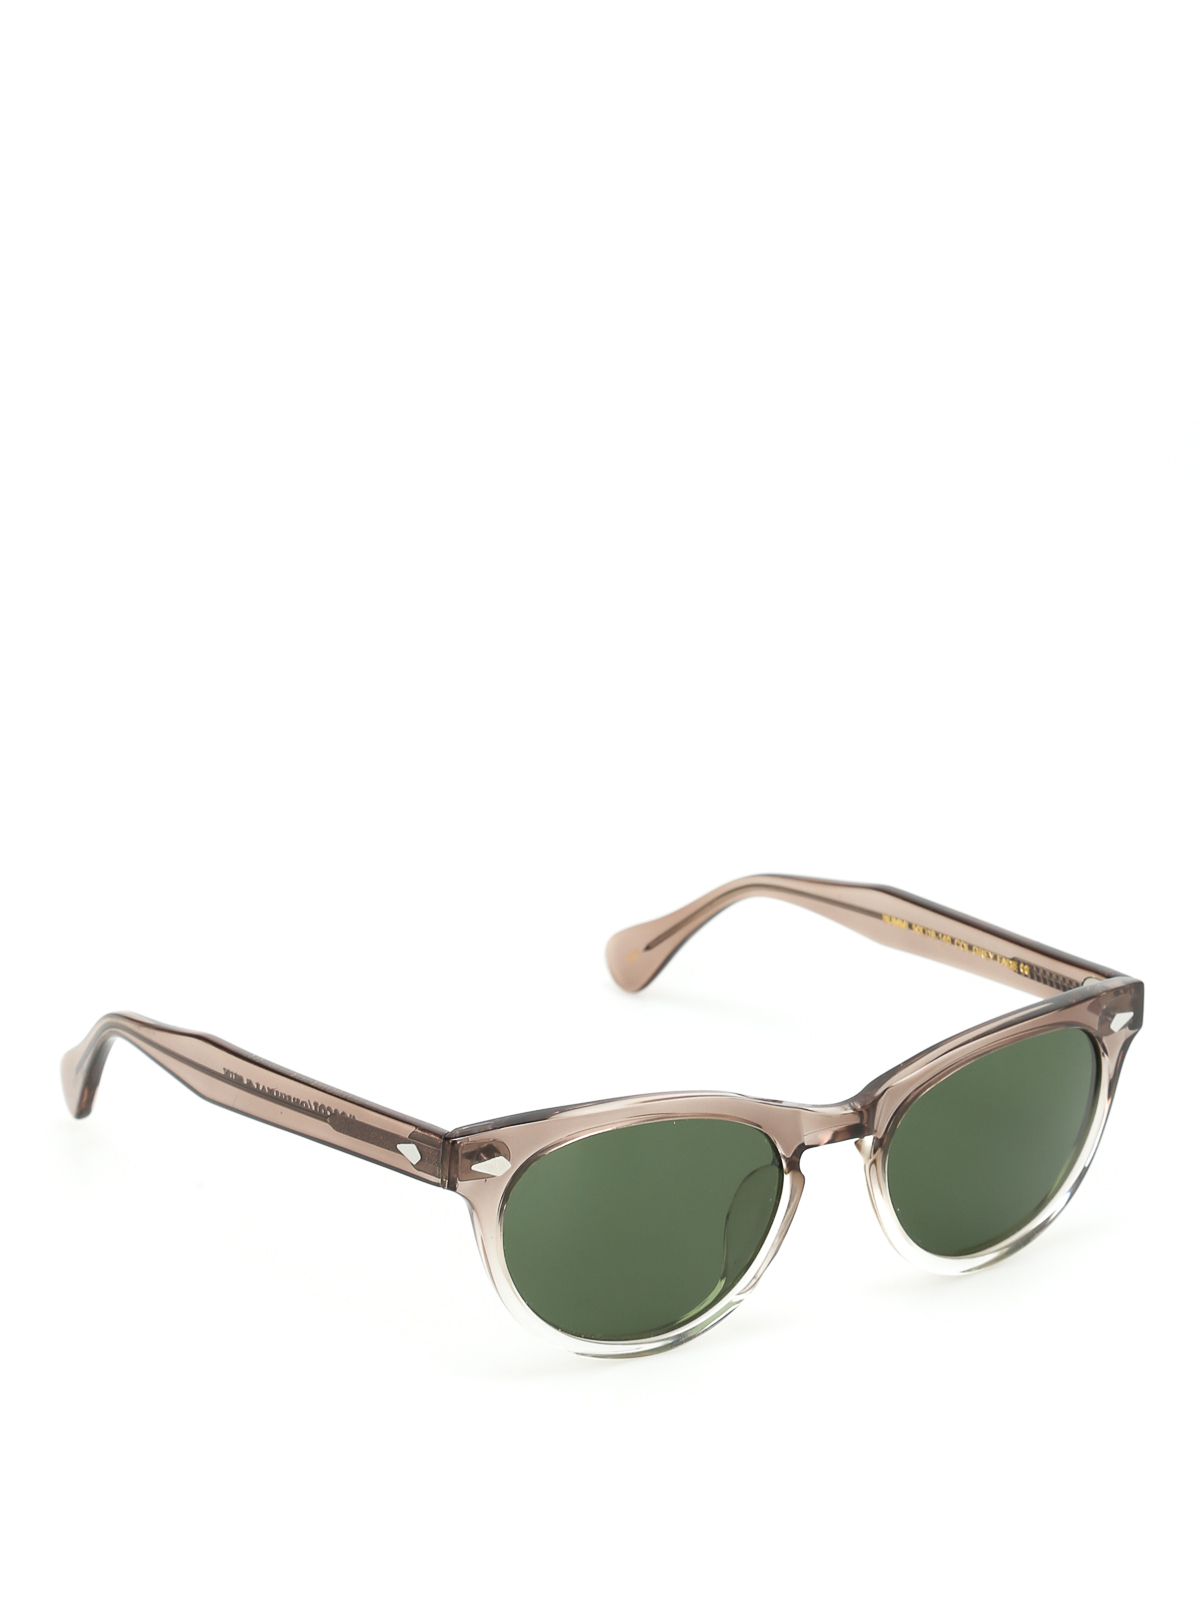 We have 8 active coupons updated on 03 12 Grab one, apply it before making a purchase and save money today. Whether you love shopping at Moscot or other Jewelry & Watches,Department Store stores, these coupons are not to be missed. And we are working hard to find you the best coupons, discount codes and deals all the time.